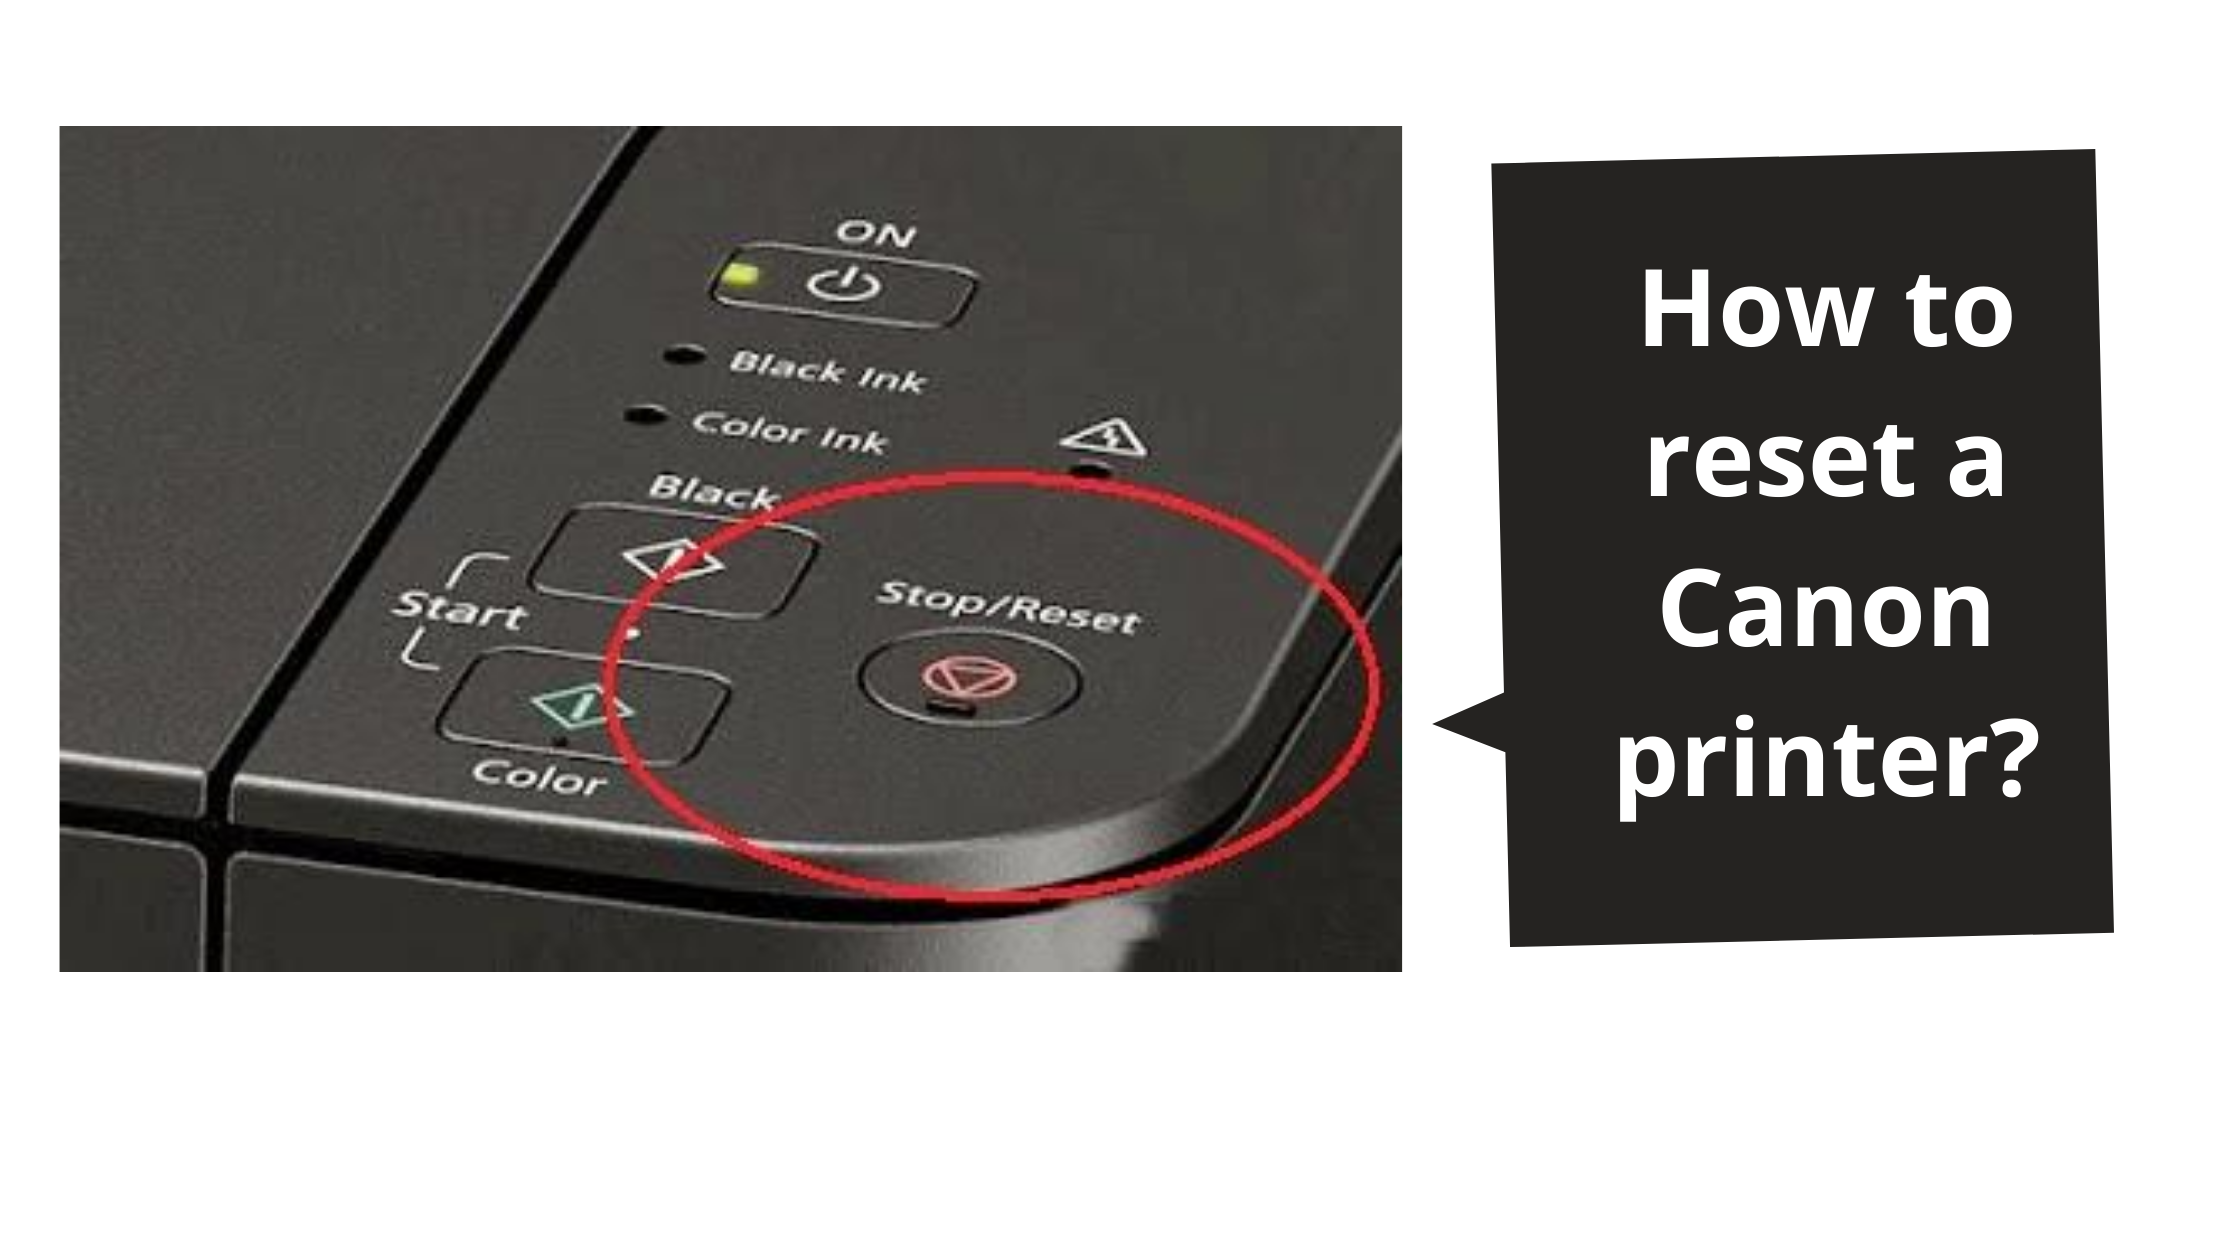 How to reset a Canon printer